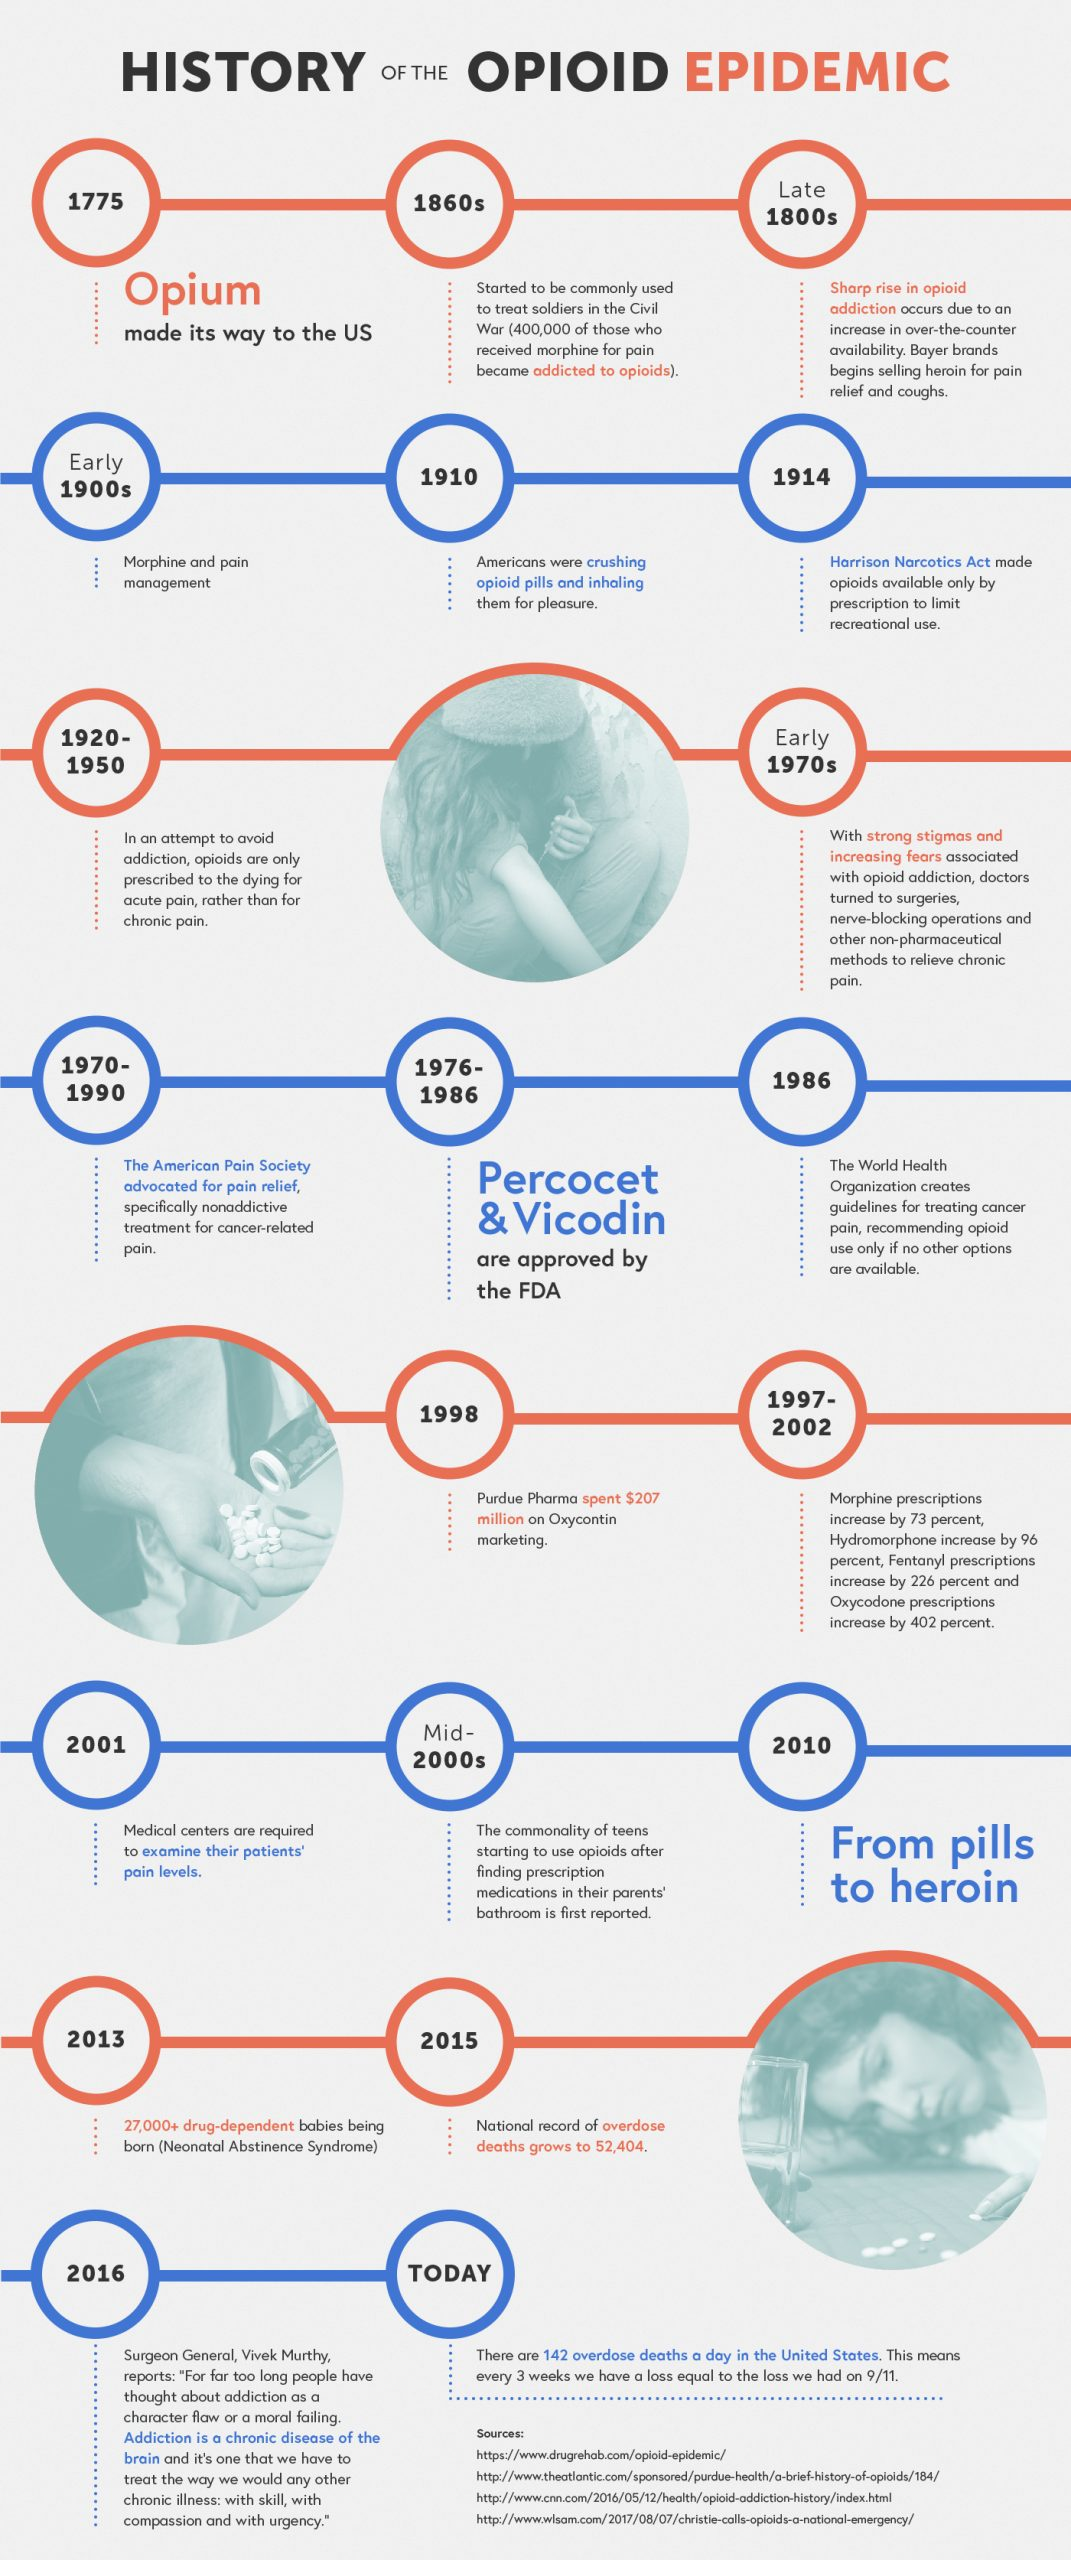 the history of opiates used int he united states is important to know.